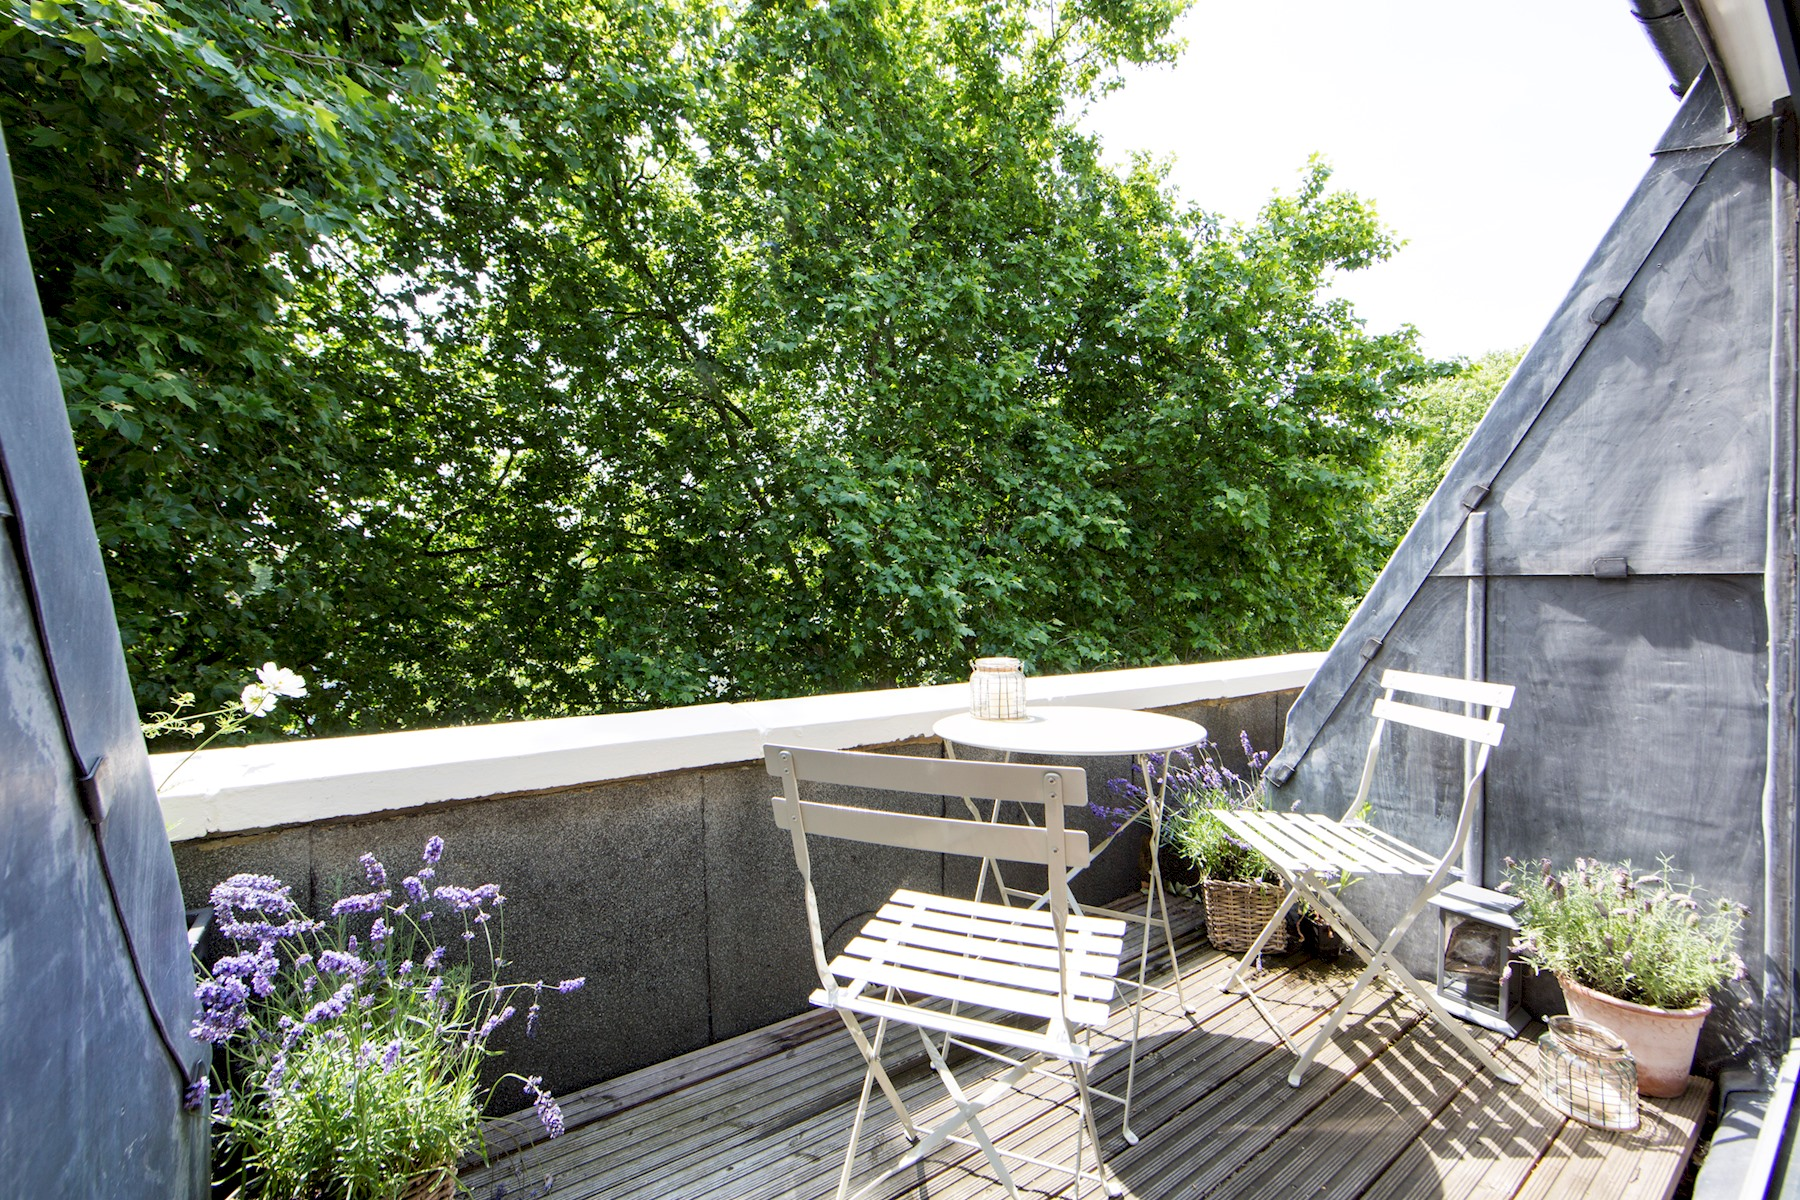 Beautifully furnished 3 bedroom, 2 bath maisonette with balcony in Bayswater